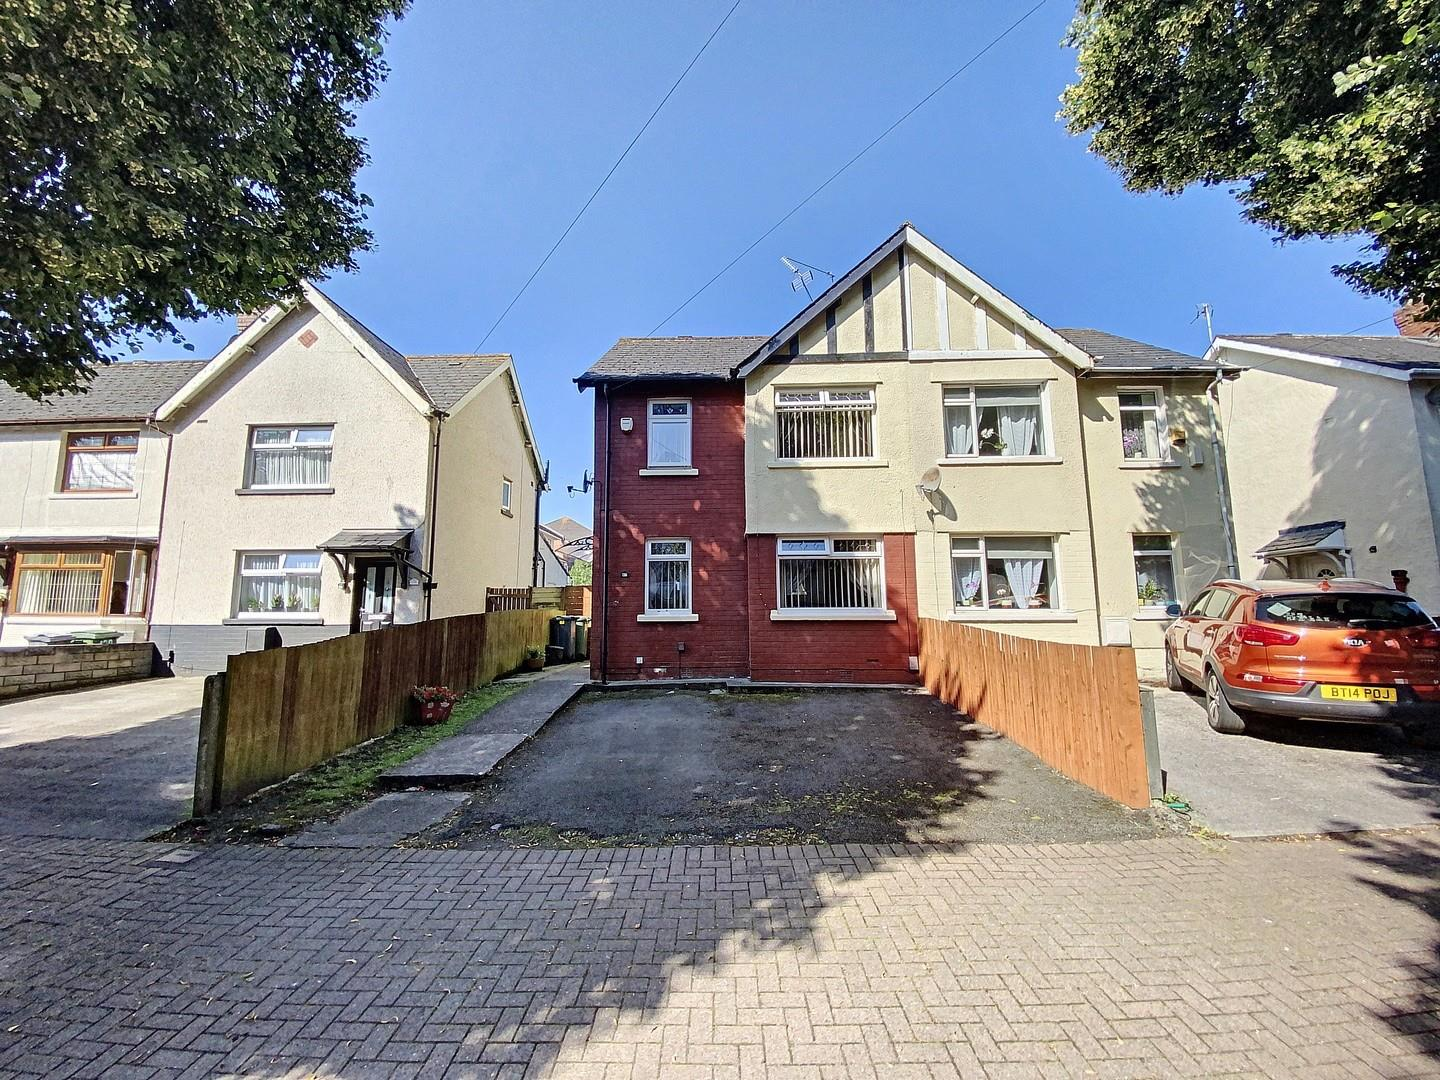 3 bed semi-detached house for sale in South Clive Street, Cardiff, CF11